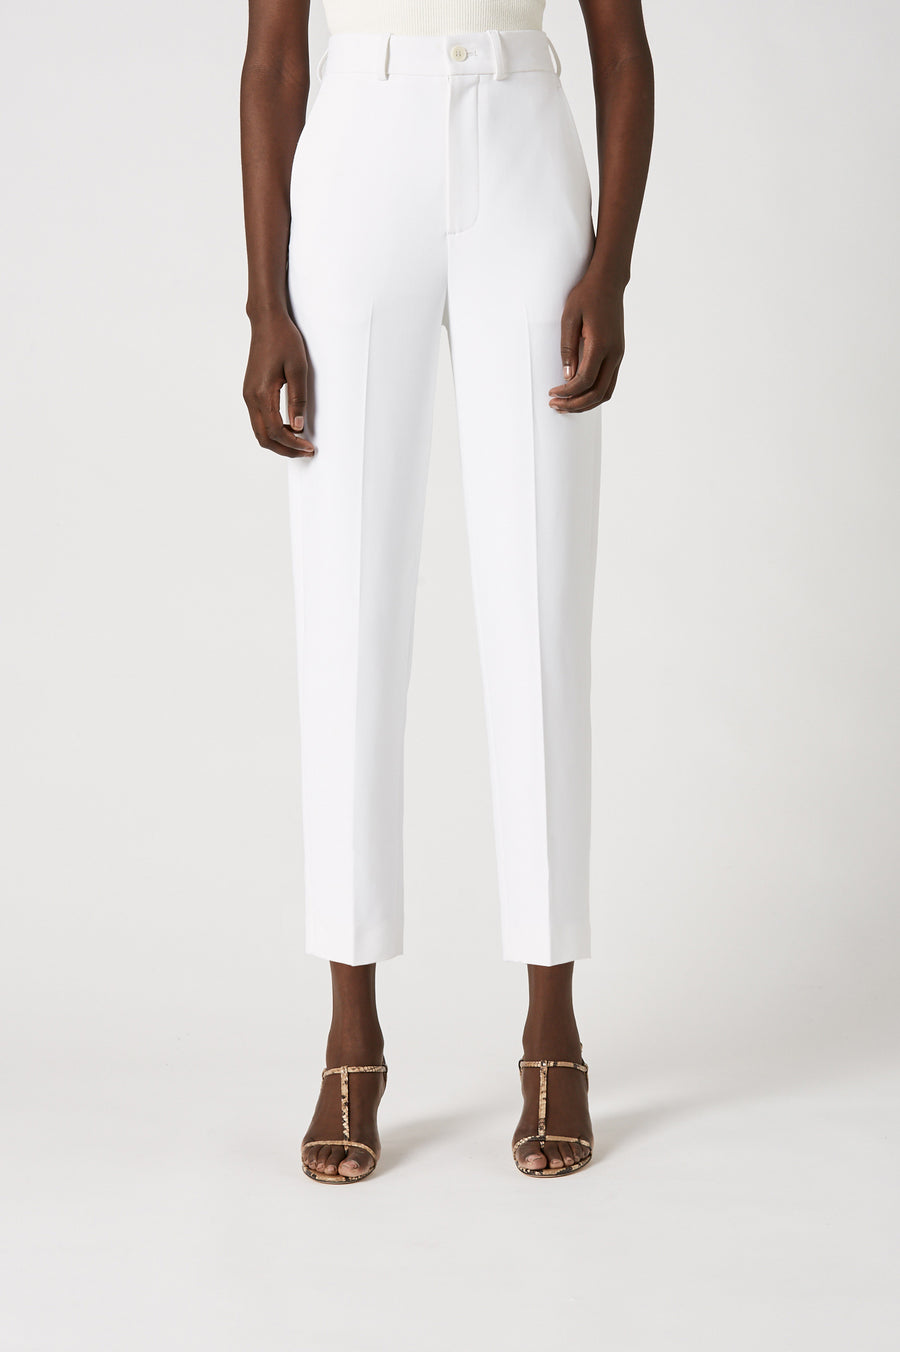 Sitting at a flattering high rise, the pant features a front zip fastening with side pockets and falls to a tapered leg.